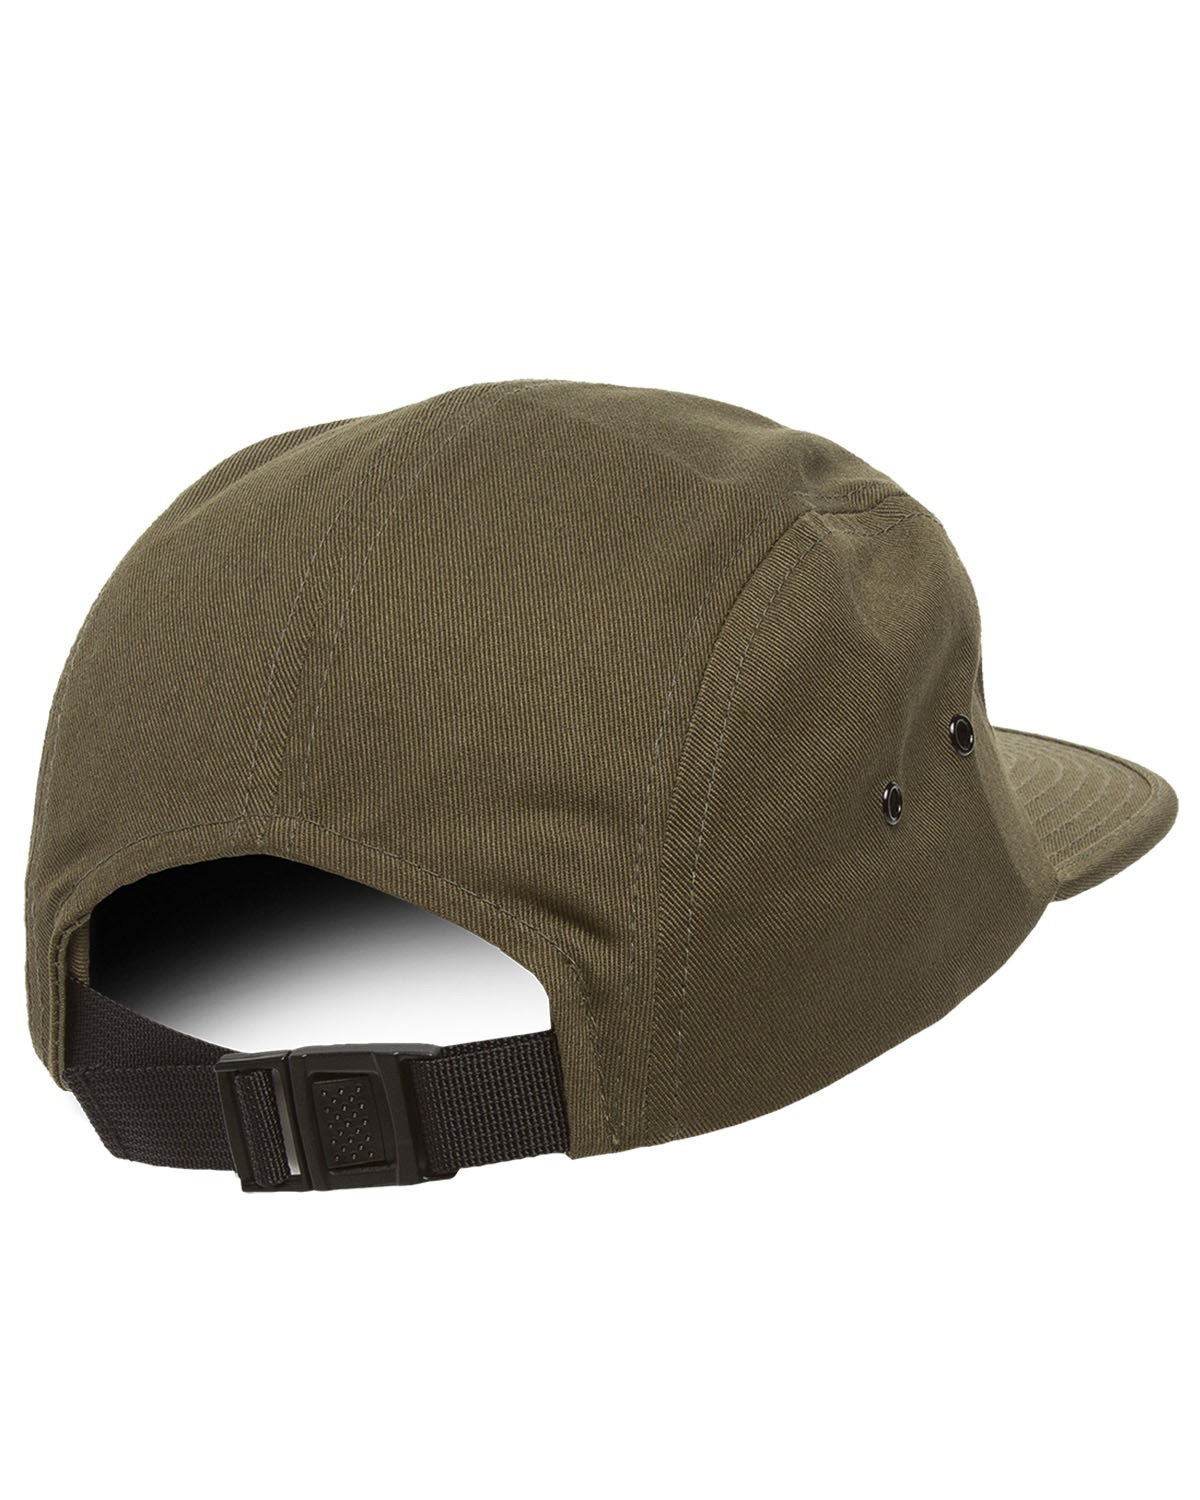 Y7005 Yupoong OLIVE